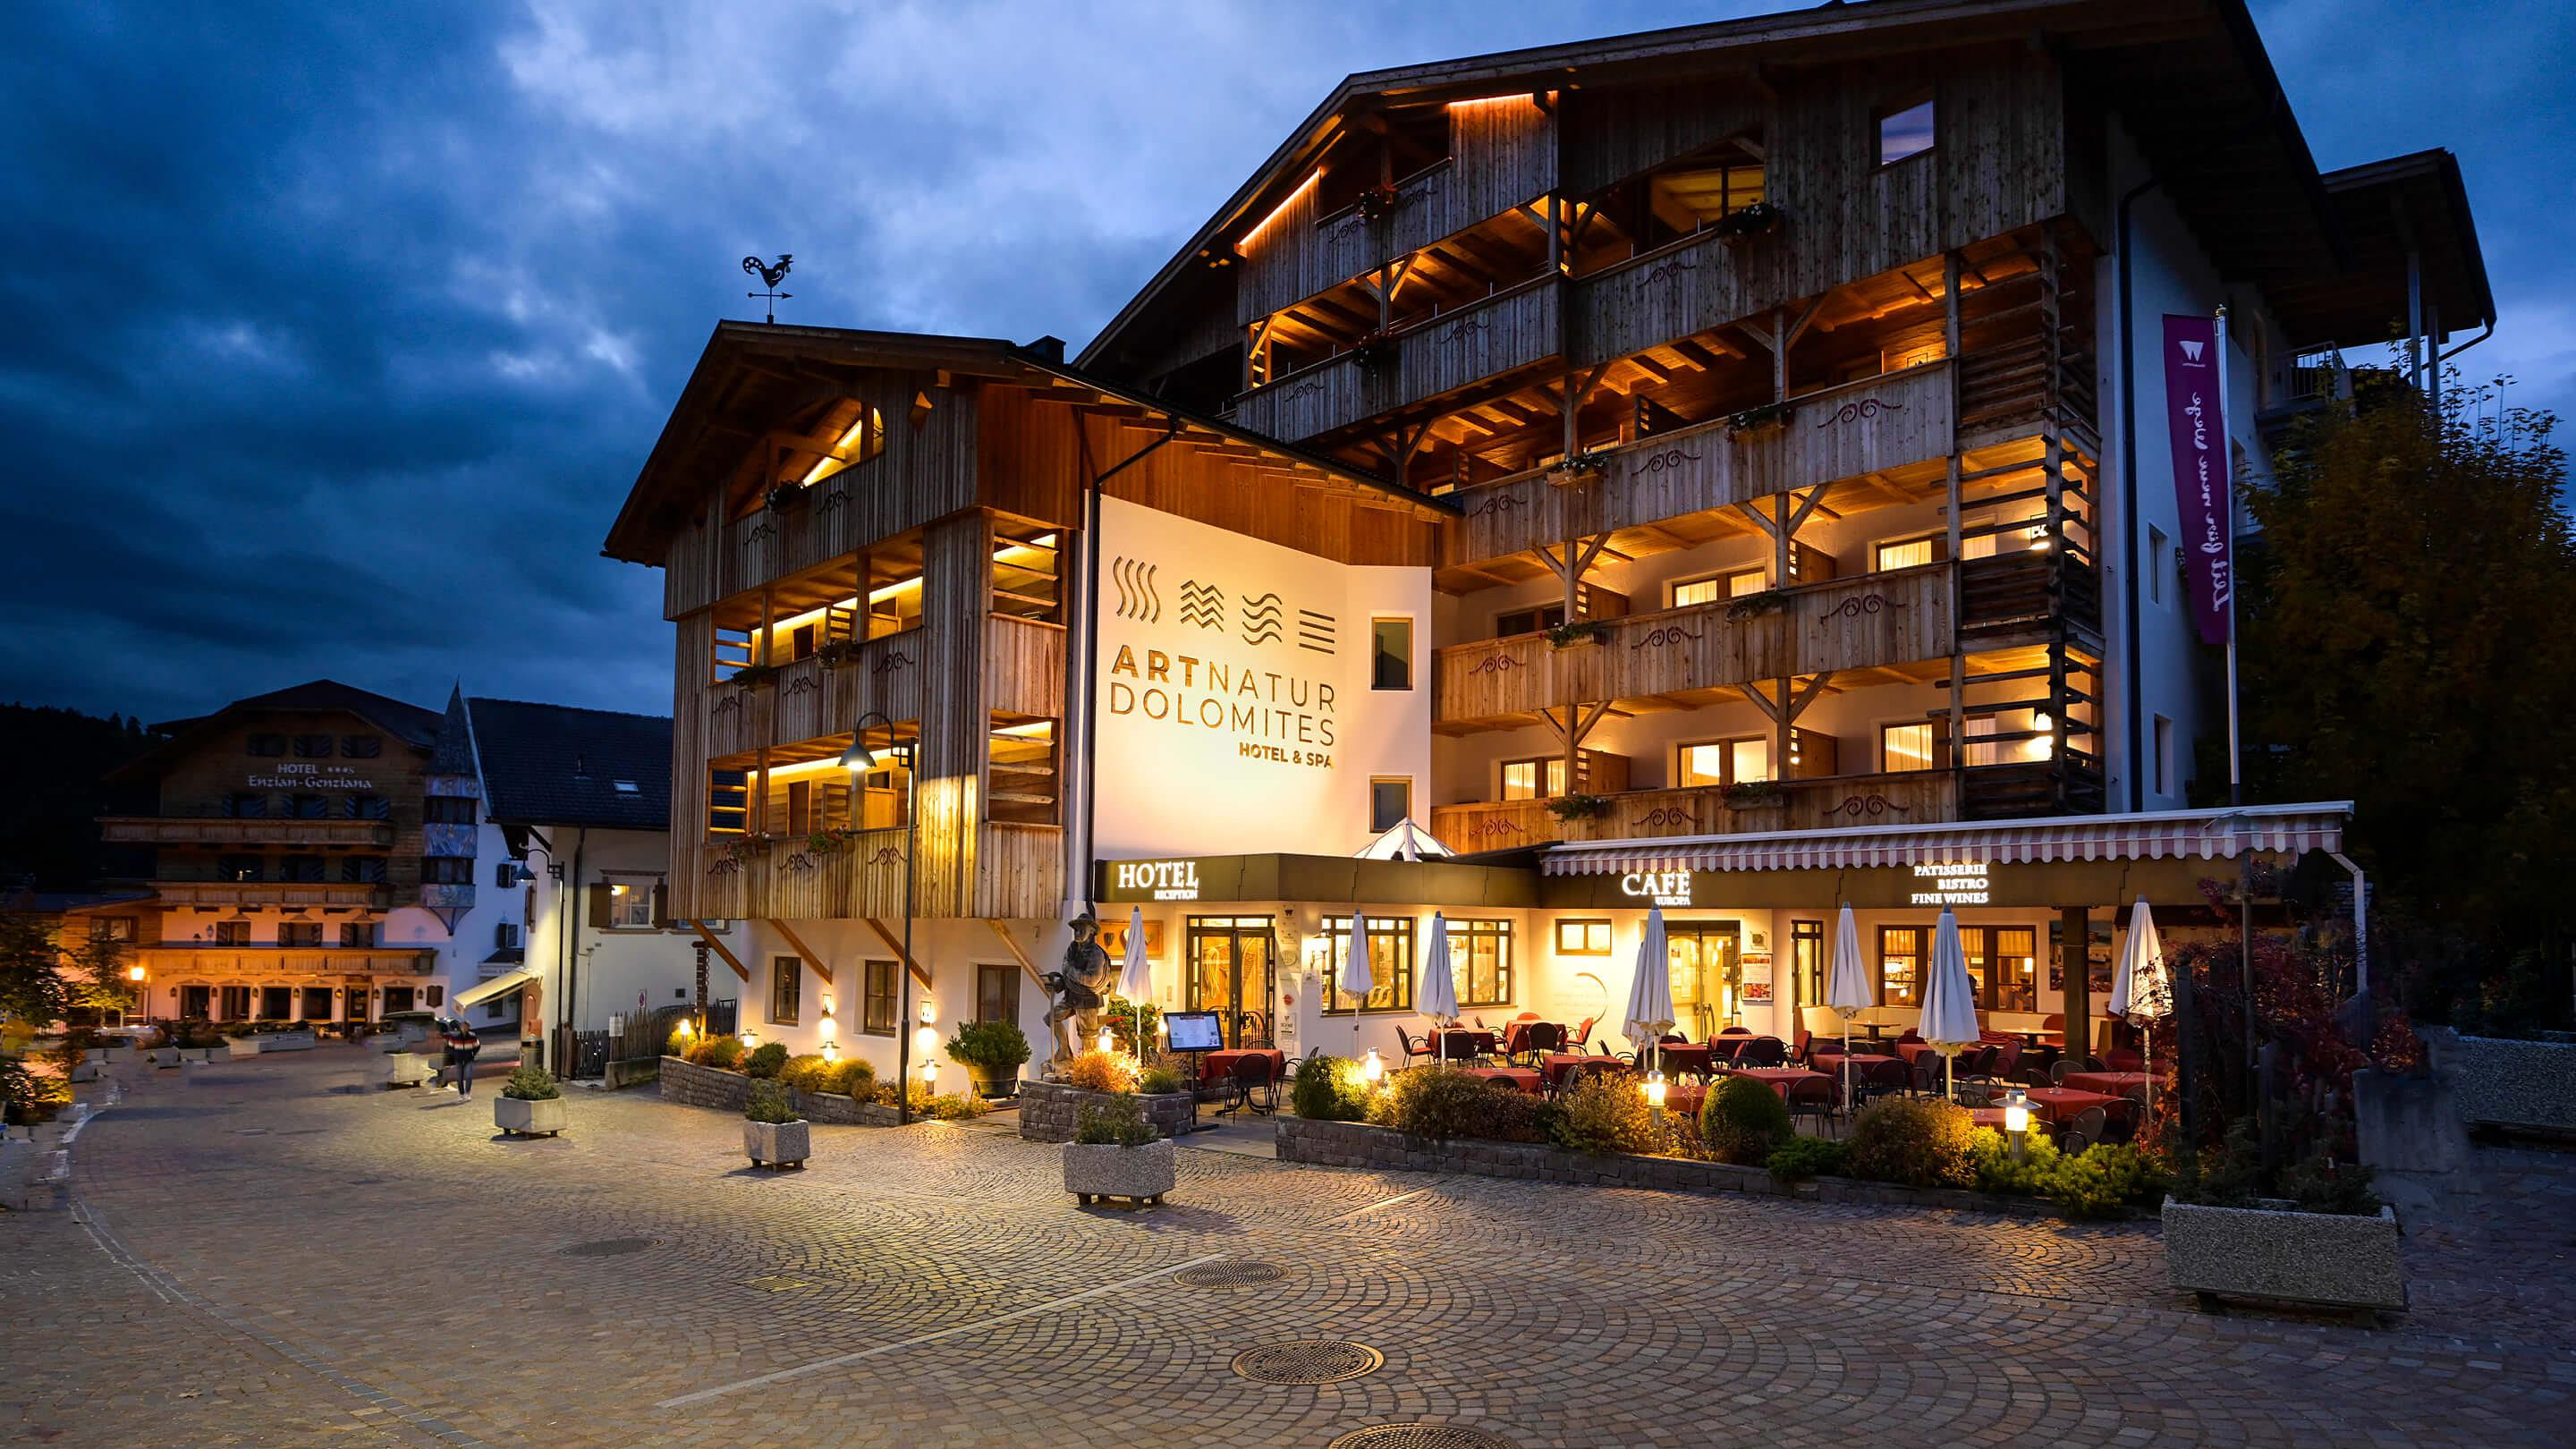 Vitalpina Basecamp Hotel in the center of the Dolomites